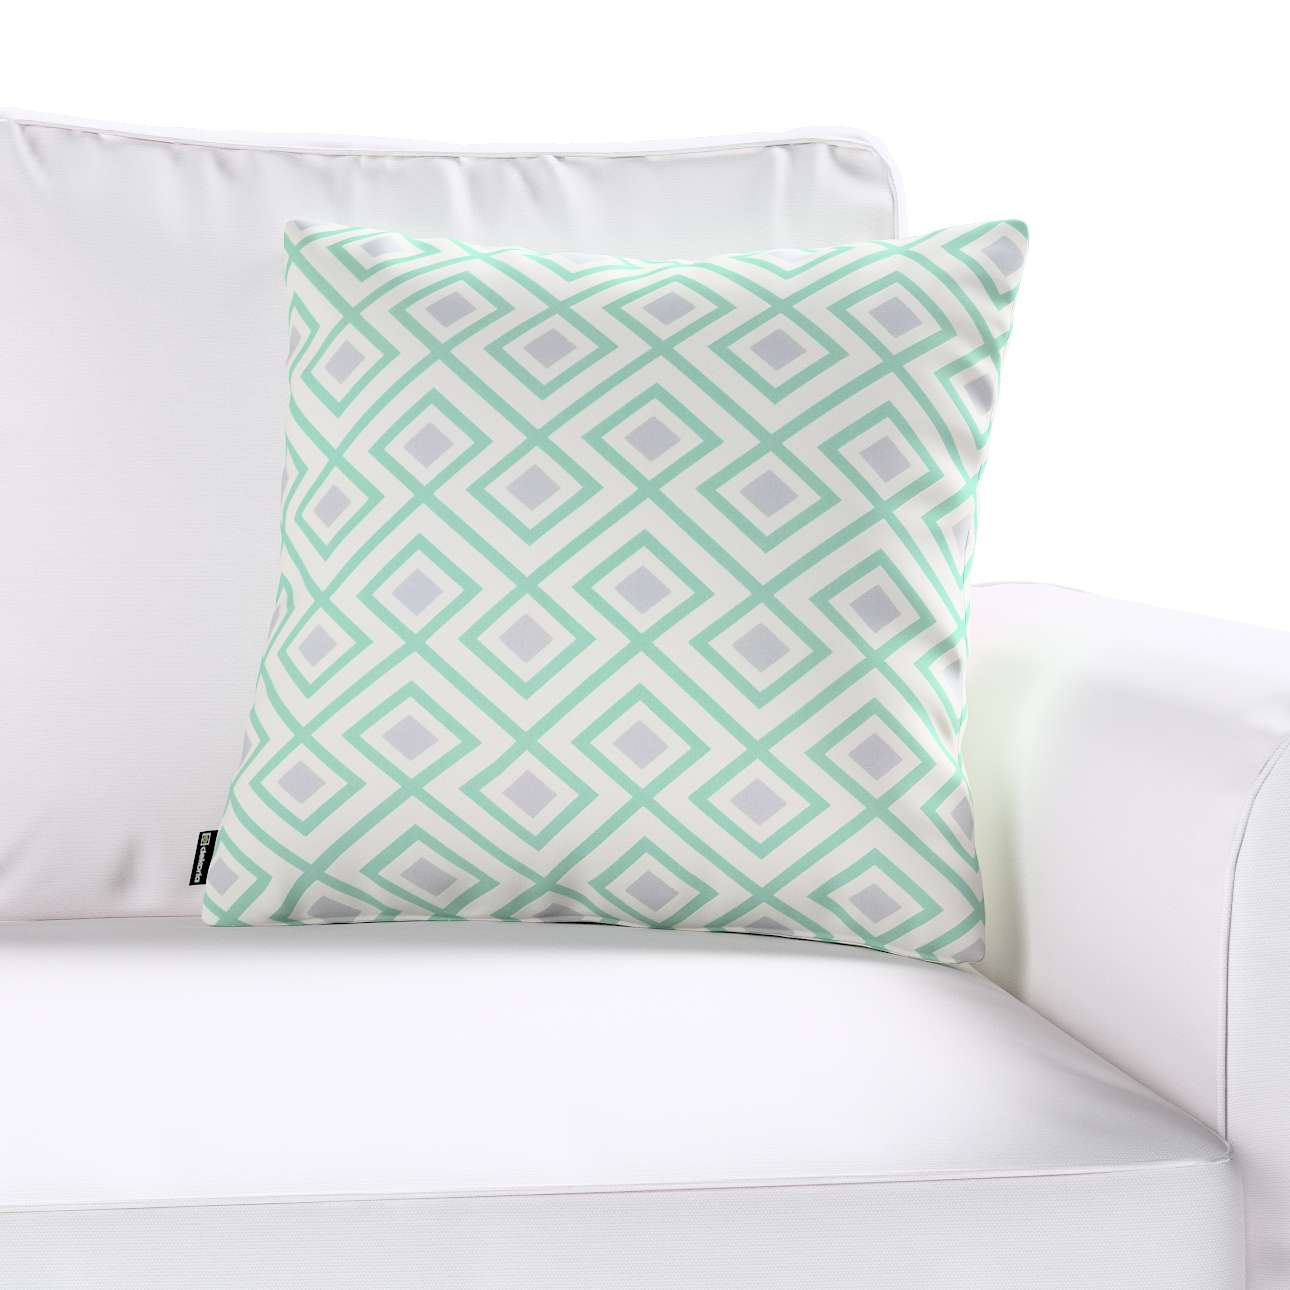 Kinga cushion cover in collection Geometric, fabric: 141-45